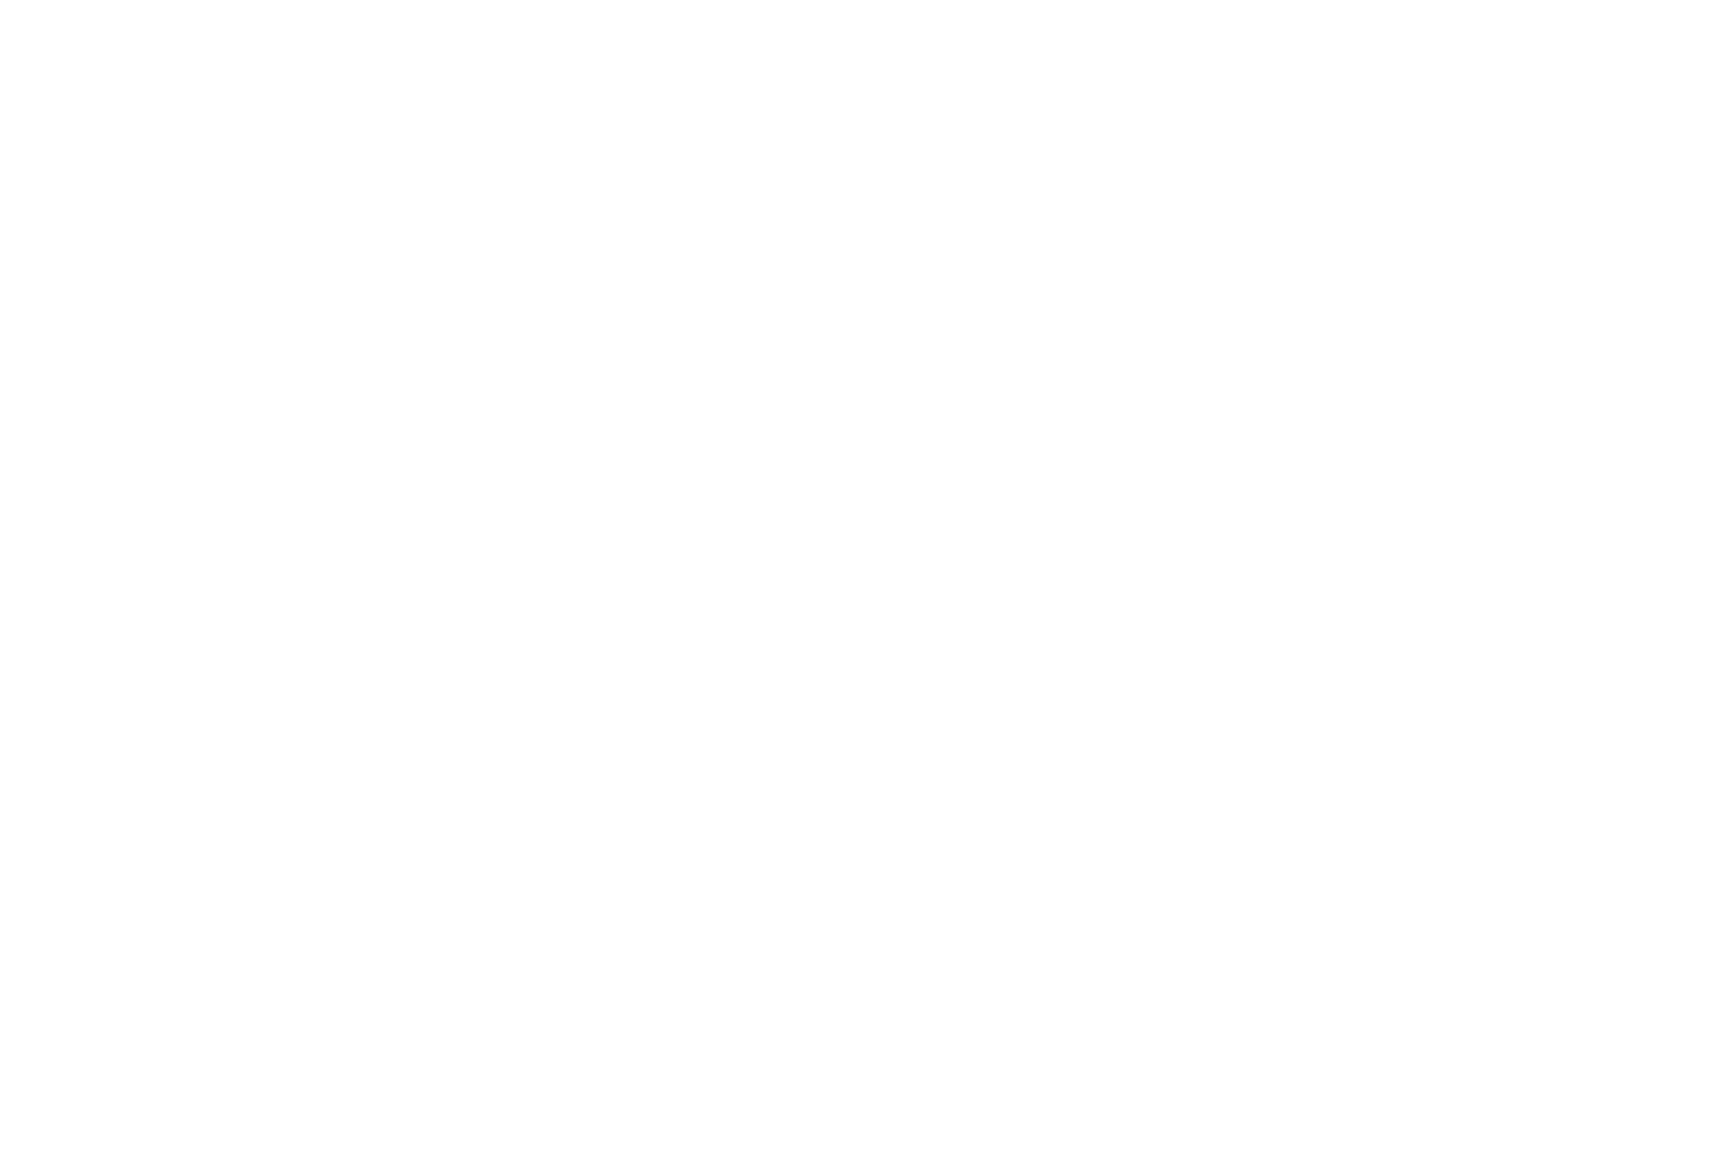 OFFICIAL SELECTION - Tokyo Lift-Off Film Festival - 2020